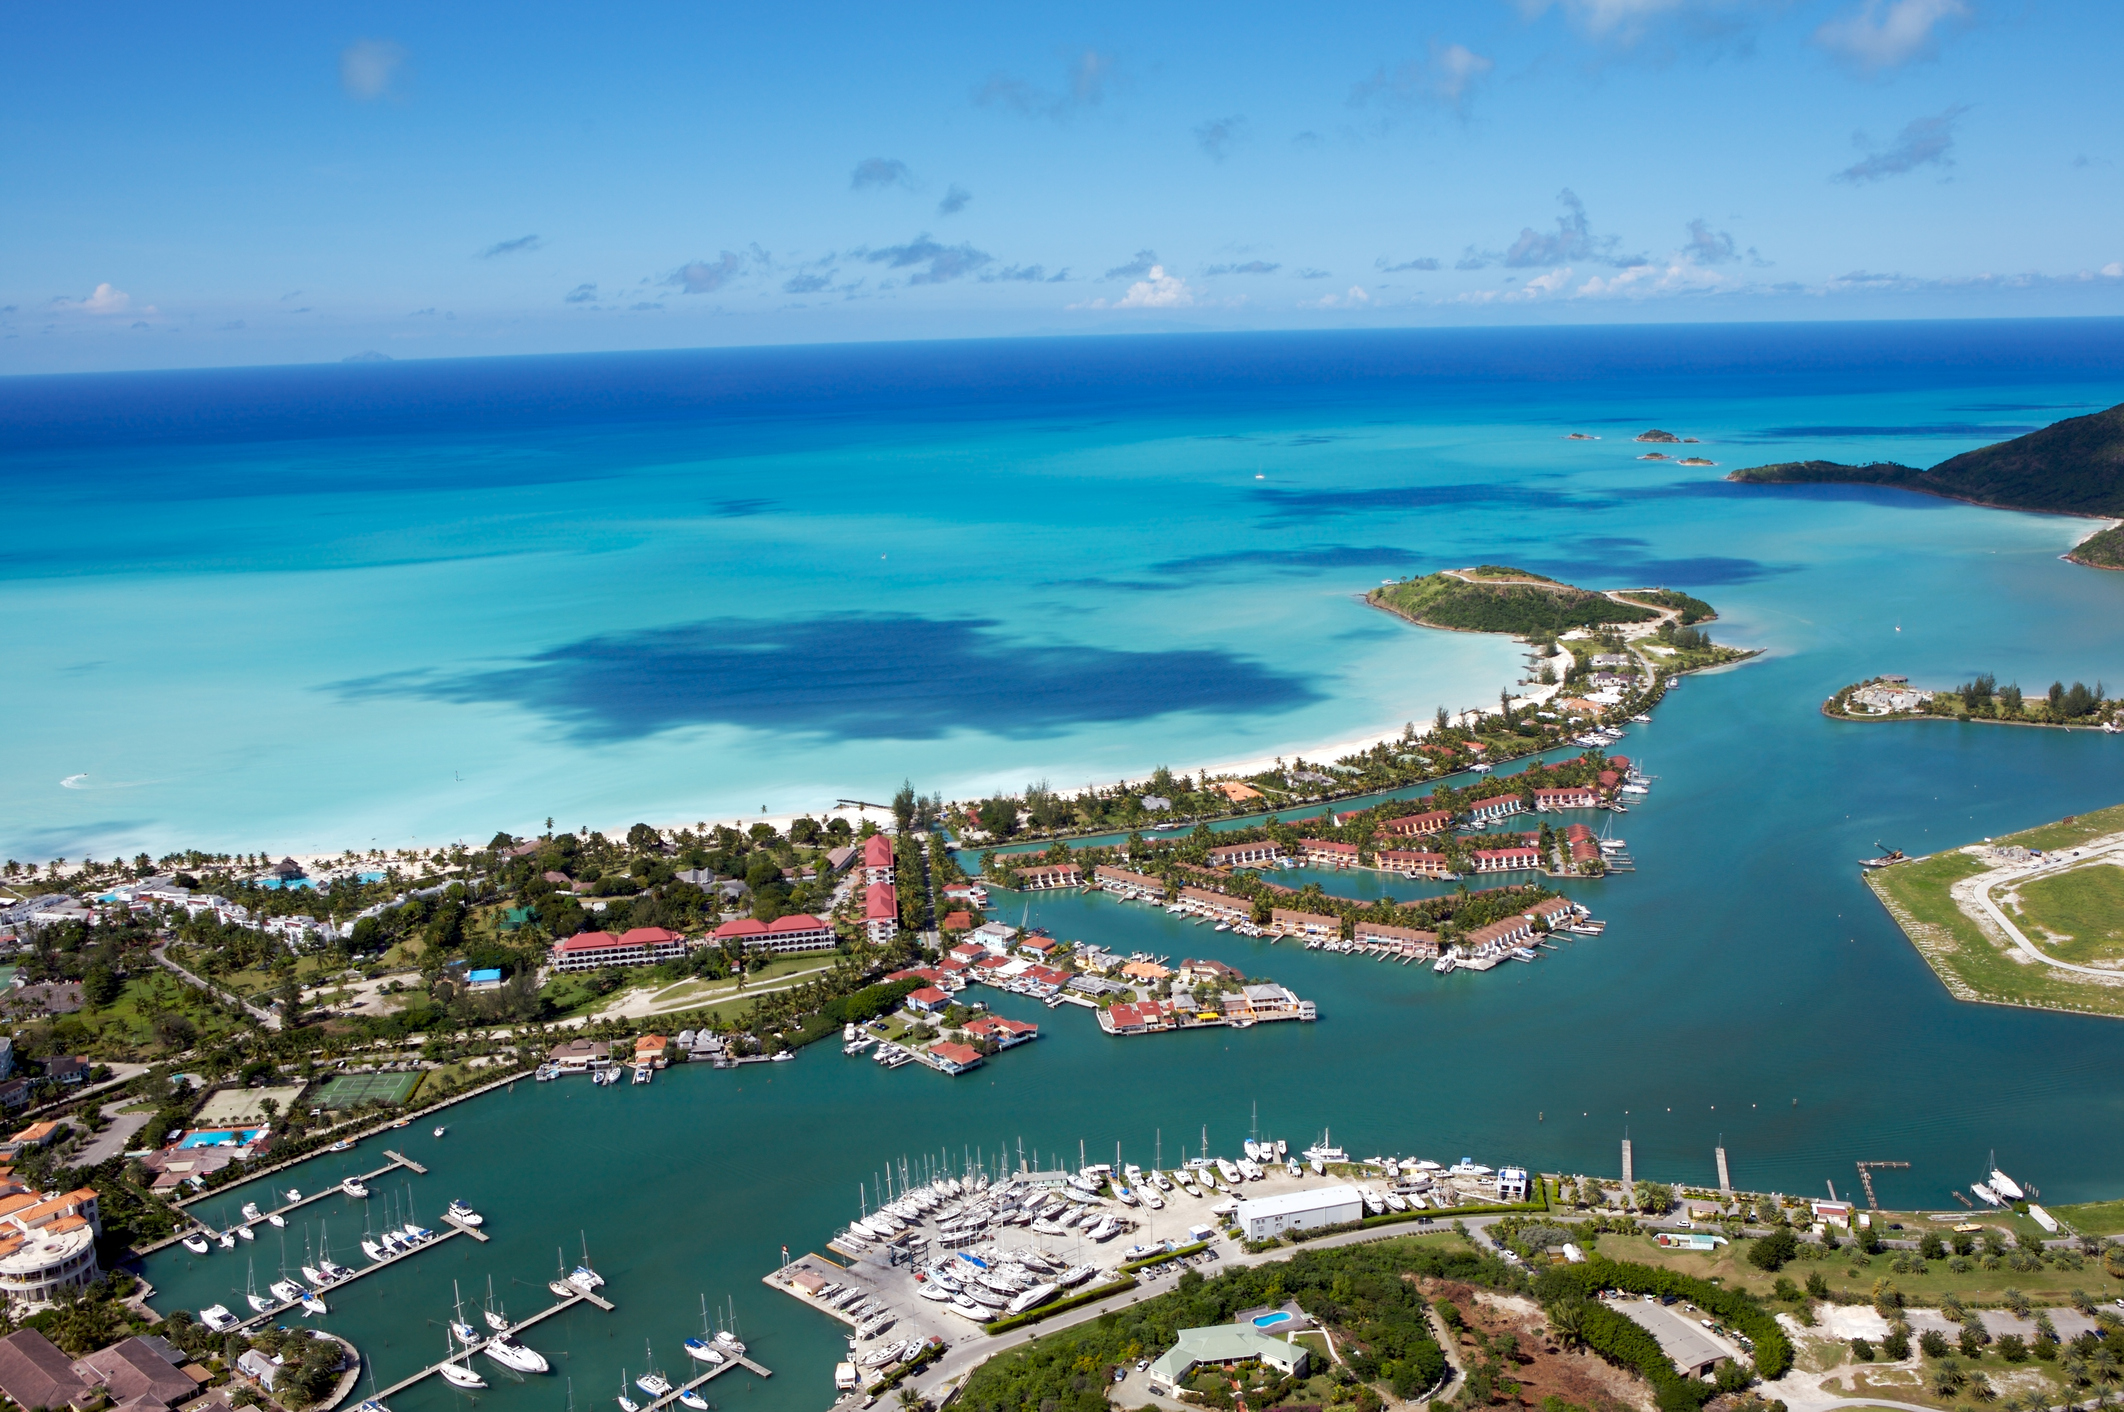 Jolly Harbour, Antigua West Indies. Marina, beach, boats, villas, caribbean.